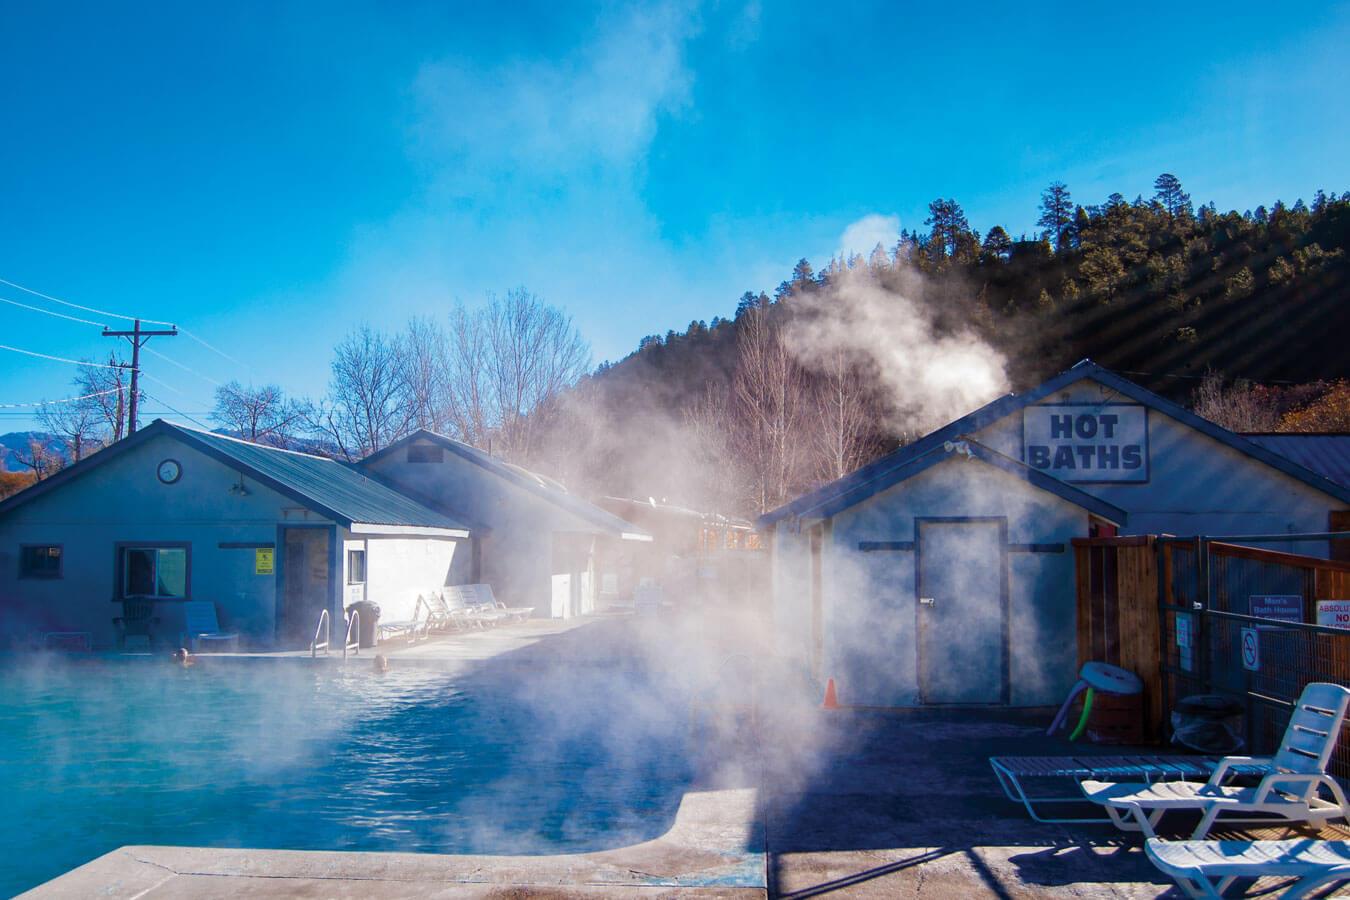 Join us for the first ever Pagosa Hot Springs Fest in downtown Pagosa Springs, Colorado